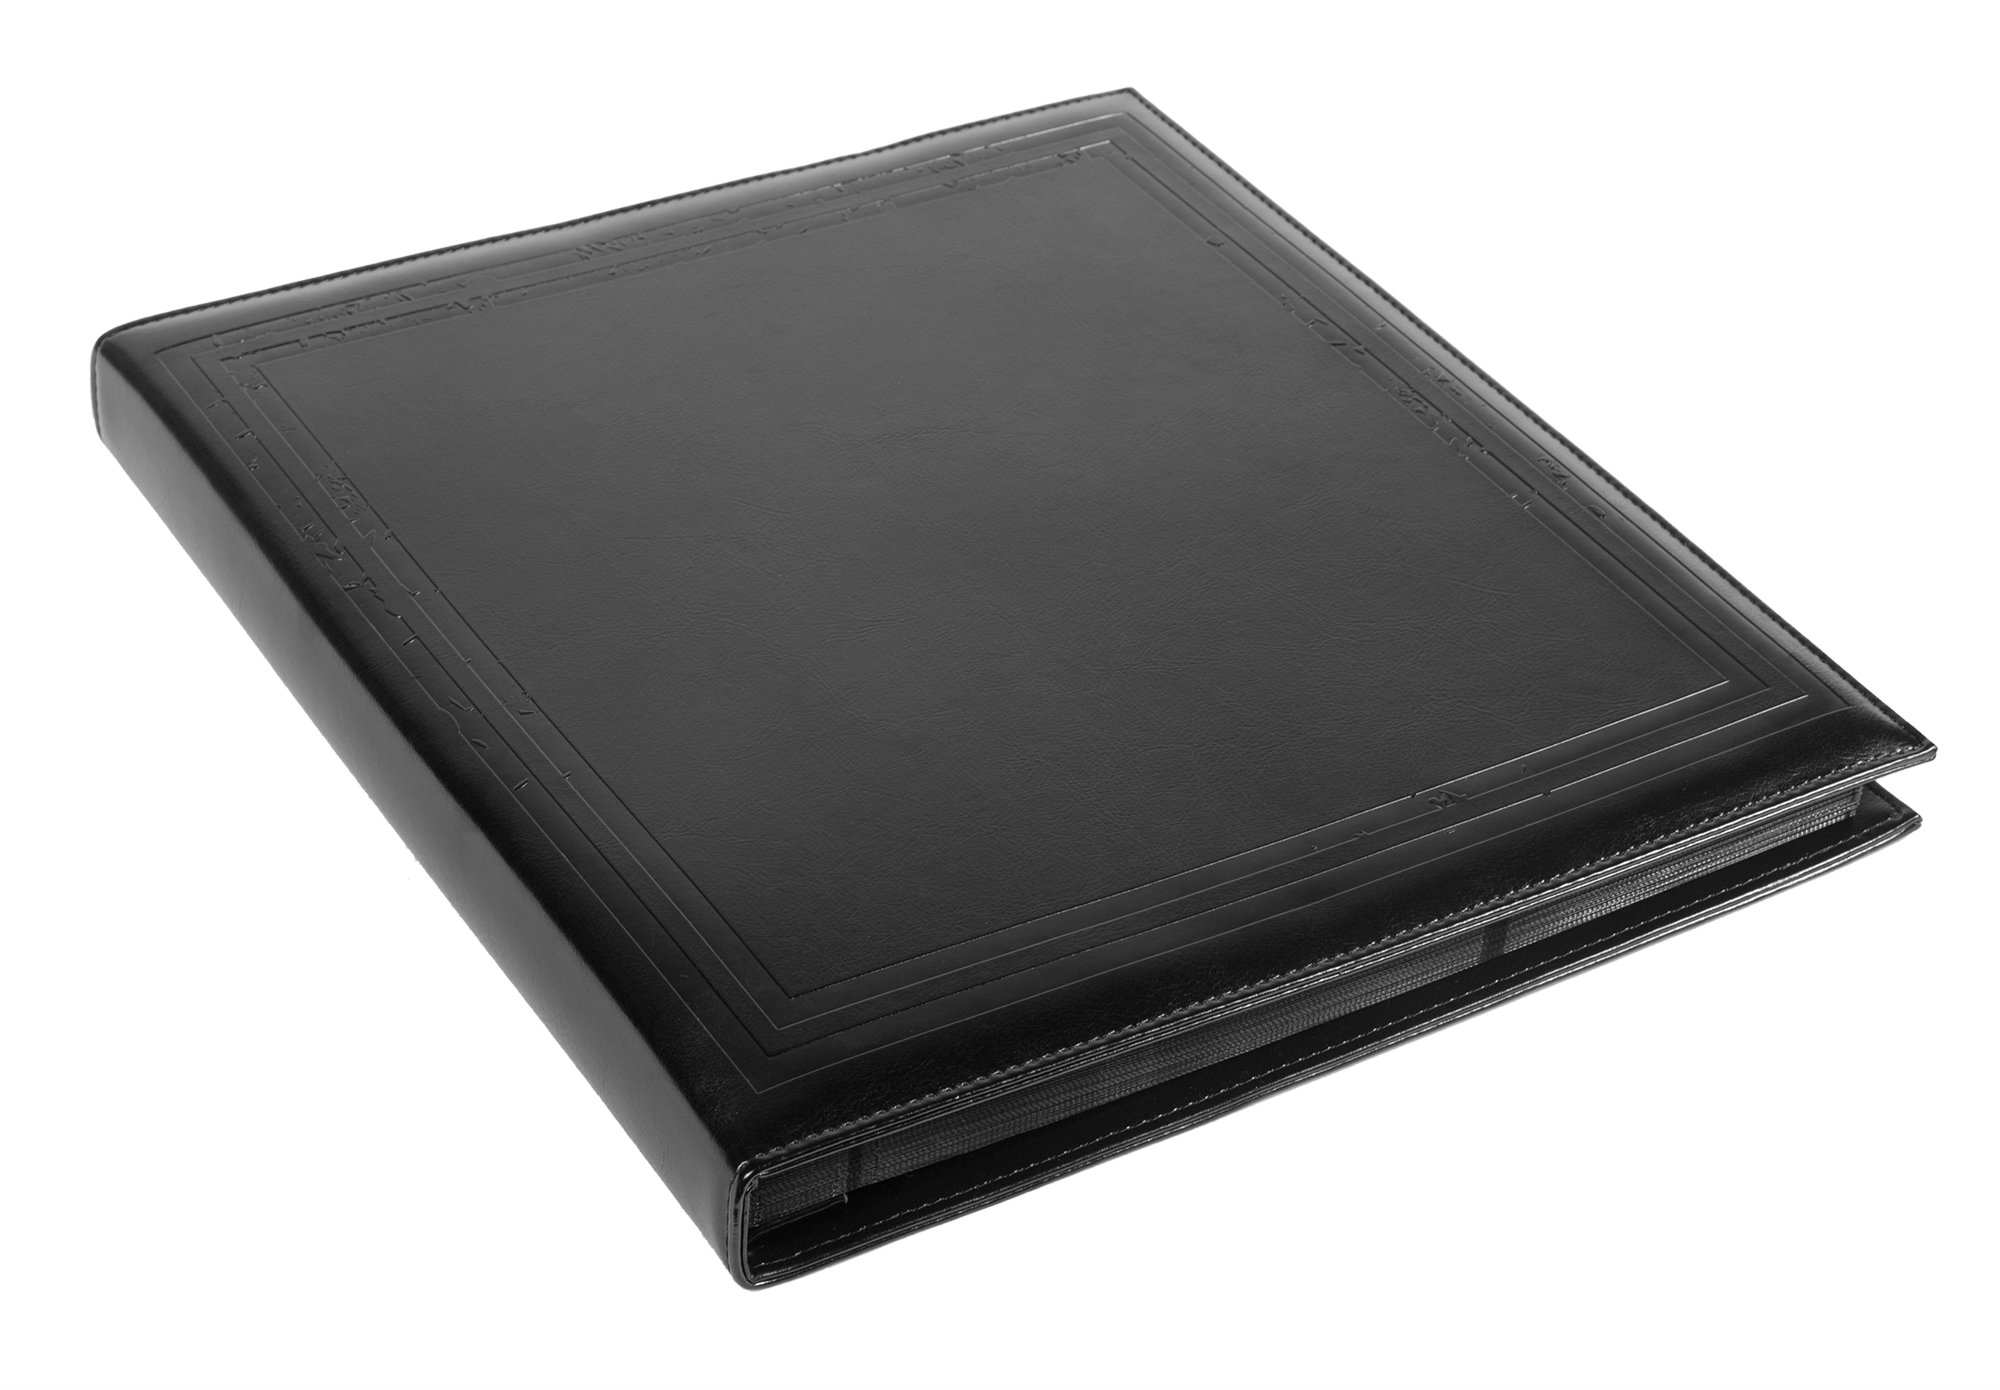 Black Faux Leather Family Photo Album with Embossed Borders – Holds 500 4x6 Photographs by Red Co.